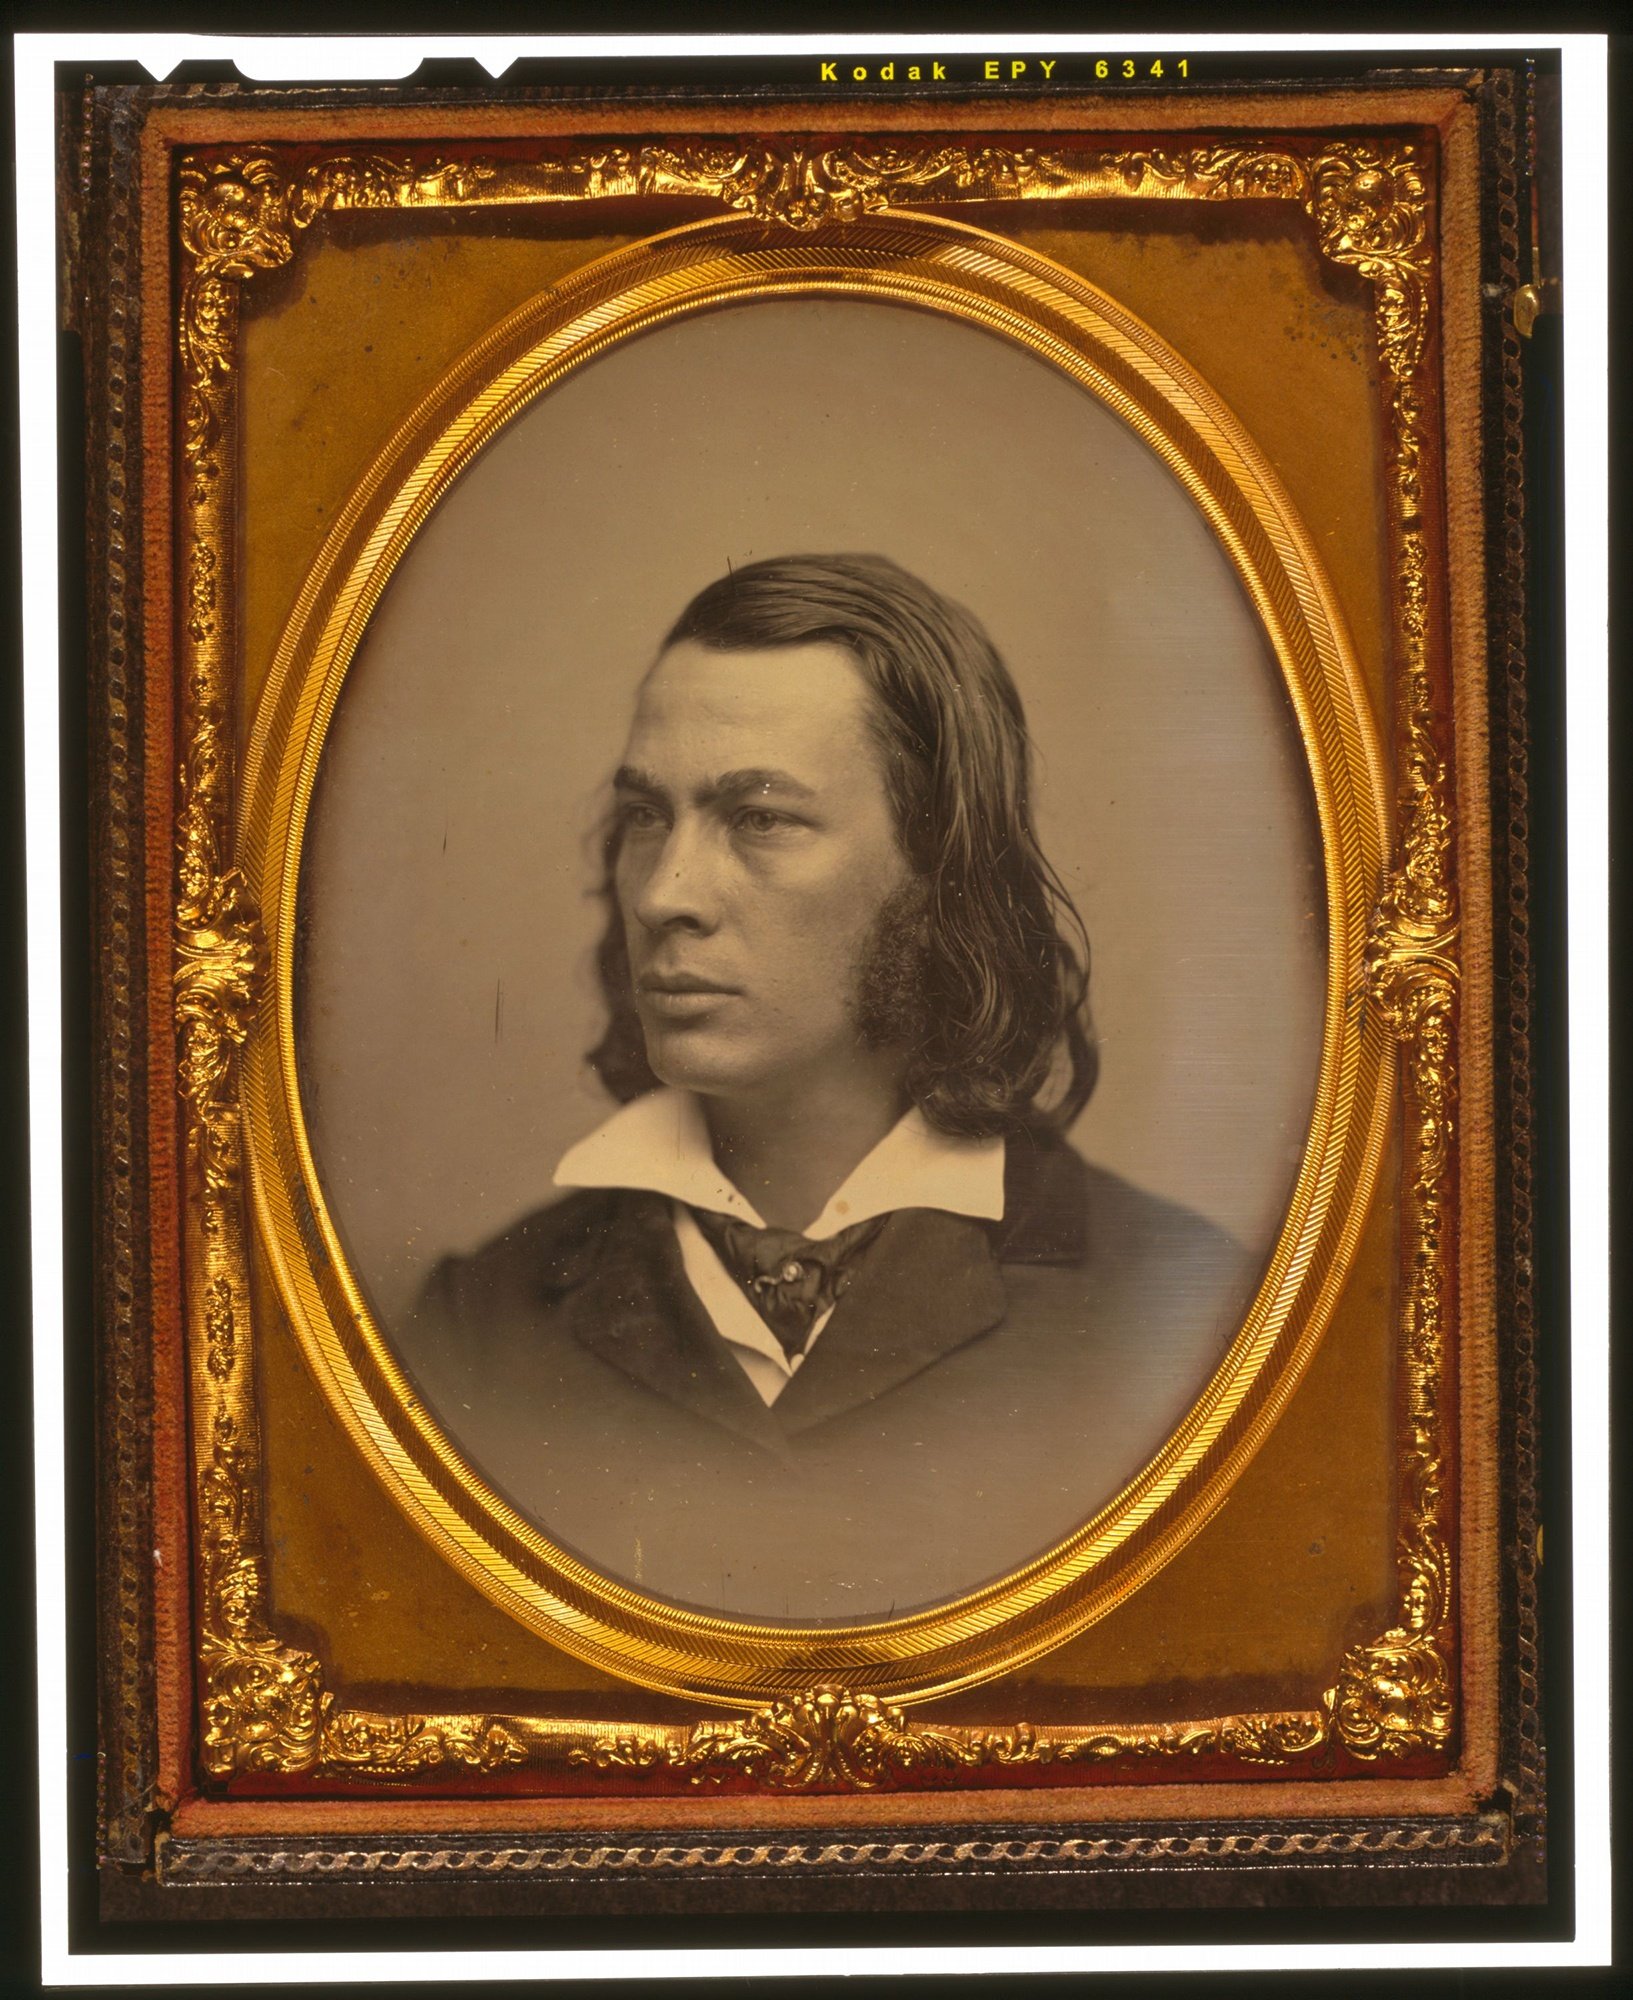 Portrait of George Lippard, daguerreotype, c. 1850. Courtesy of the Library of Congress Prints and Photographs Division, daguerreotype collection.